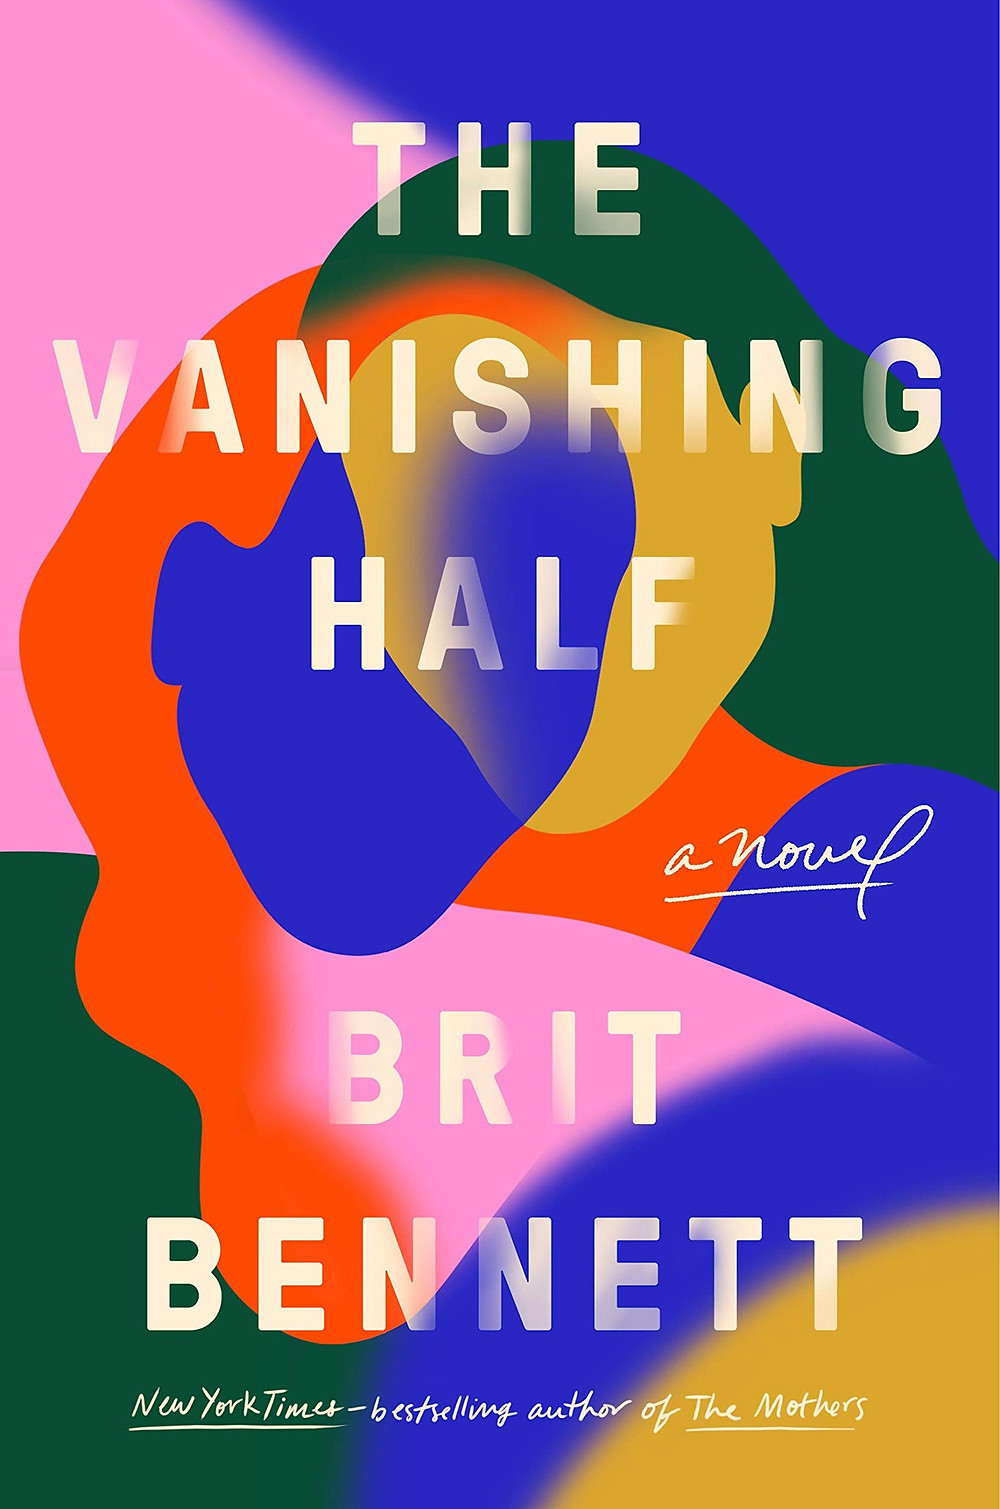 "The Vanishing Half by Brit Bennett (Author). The Book Slut Friday debrief. thebookslut.  #1 NEW YORK TIMES BESTSELLER A GOOD MORNING AMERICA Book Club Pick! ""Bennett's tone and style recalls James Baldwin and Jacqueline Woodson, but it's especially reminiscent of Toni Morrison's 1970 debut novel, The Bluest Eye."" --Kiley Reid, Wall Street Journal ""A story of absolute, universal timelessness ...For any era, it's an accomplished, affecting novel. For this moment, it's piercing, subtly wending its way toward questions about who we are and who we want to be...."" - Entertainment Weekly   From The New York Times-bestselling author of The Mothers, a stunning new novel about twin sisters, inseparable as children, who ultimately choose to live in two very different worlds, one black and one white. The Vignes twin sisters will always be identical. But after growing up together in a small, southern black community and running away at age sixteen, it's not just the shape of their daily lives that is different as adults, it's everything: their families, their communities, their racial identities. Many years later, one sister lives with her black daughter in the same southern town she once tried to escape. The other secretly passes for white, and her white husband knows nothing of her past. Still, even separated by so many miles and just as many lies, the fates of the twins remain intertwined. What will happen to the next generation, when their own daughters' storylines intersect? Weaving together multiple strands and generations of this family, from the Deep South to California, from the 1950s to the 1990s, Brit Bennett produces a story that is at once a riveting, emotional family story and a brilliant exploration of the American history of passing. Looking well beyond issues of race, The Vanishing Half considers the lasting influence of the past as it shapes a person's decisions, desires, and expectations, and explores some of the multiple reasons and realms in which people sometimes feel pulled to live as something other than their origins. As with her New York Times-bestselling debut The Mothers, Brit Bennett offers an engrossing page-turner about family and relationships that is immersive and provocative, compassionate and wise. Product Details Price $27.00  $24.84 Publisher Riverhead Books Publish Date June 02, 2020 Pages 352 Dimensions 6.2 X 1.2 X 9.3 inches 